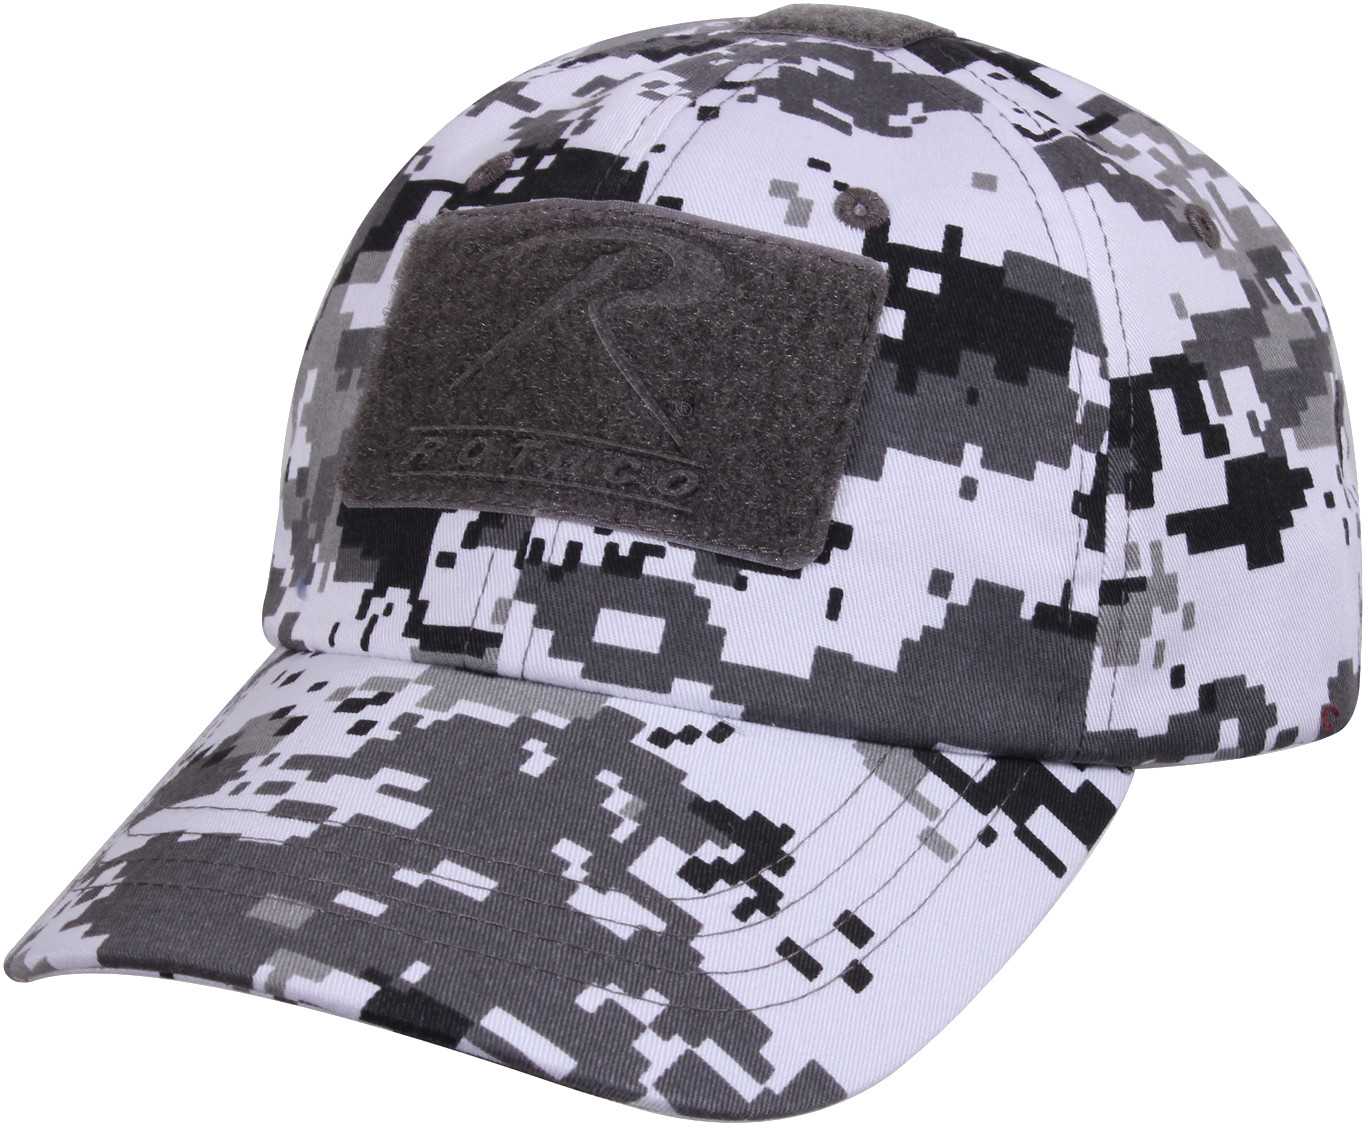 City Digital Camouflage Military Baseball Hat Tactical Operator Cap 354708f7eb9